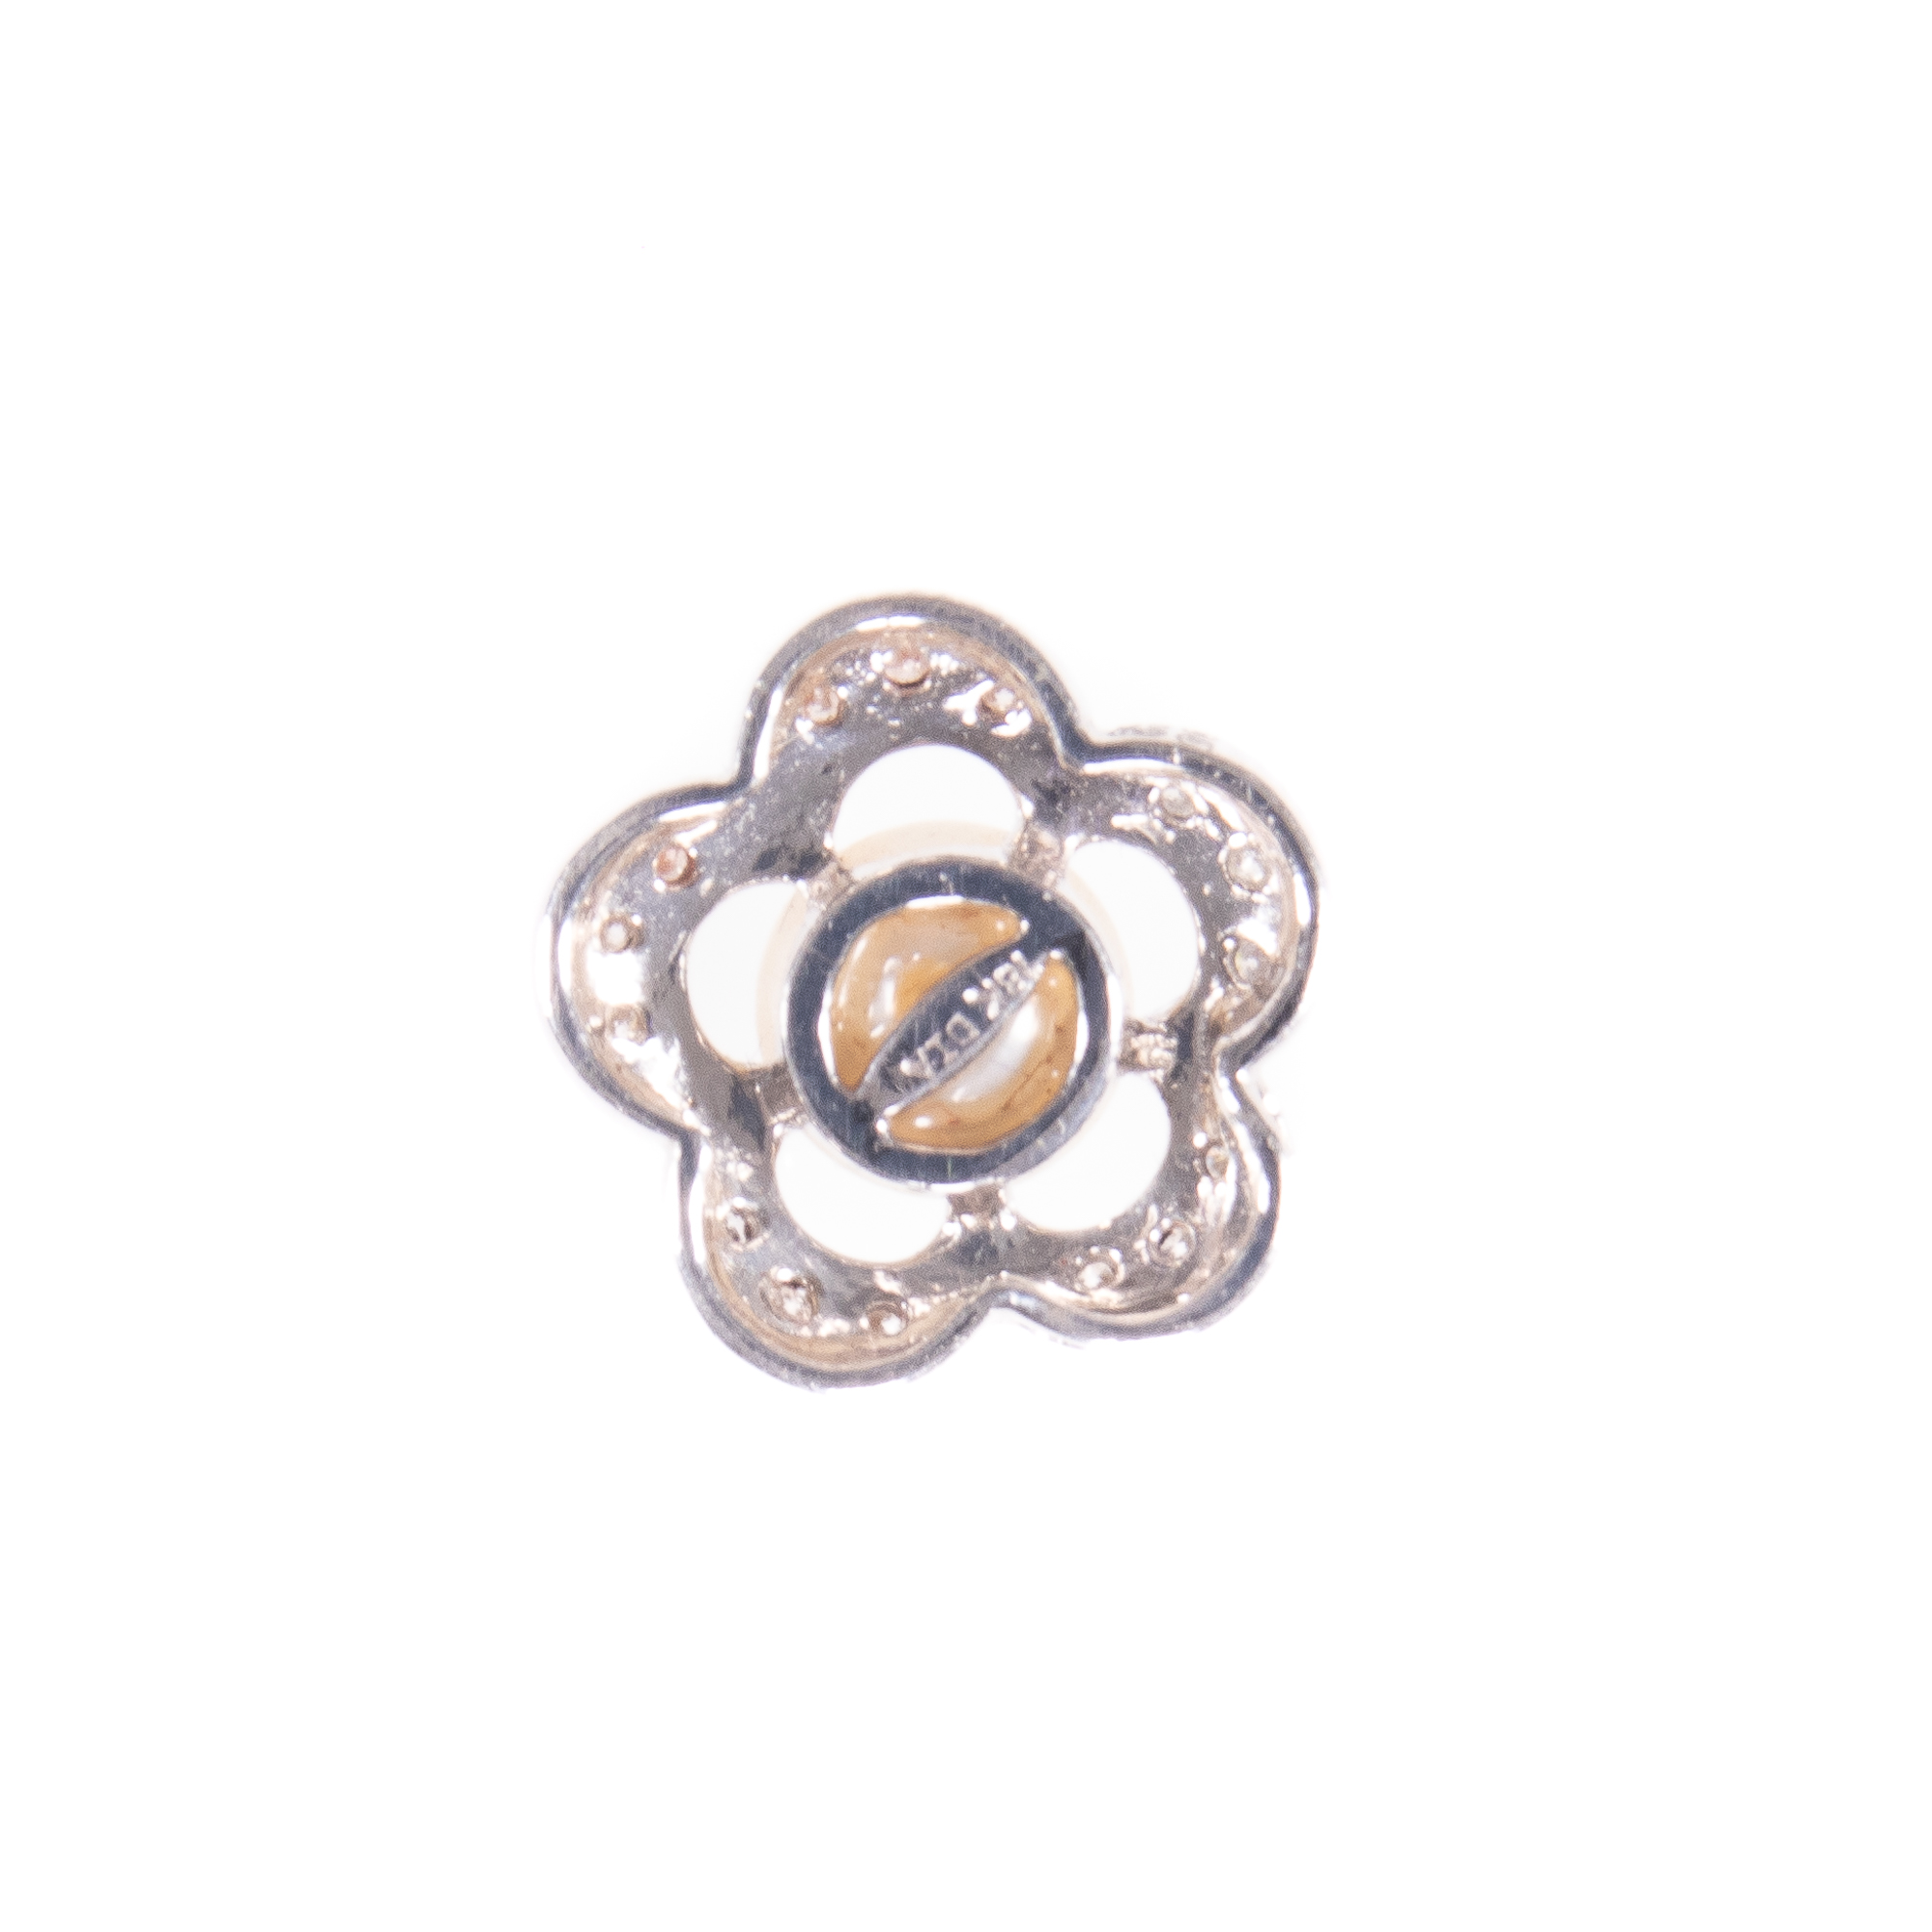 18ct White Gold Diamond & Pearl Floral Pendant - Image 4 of 6